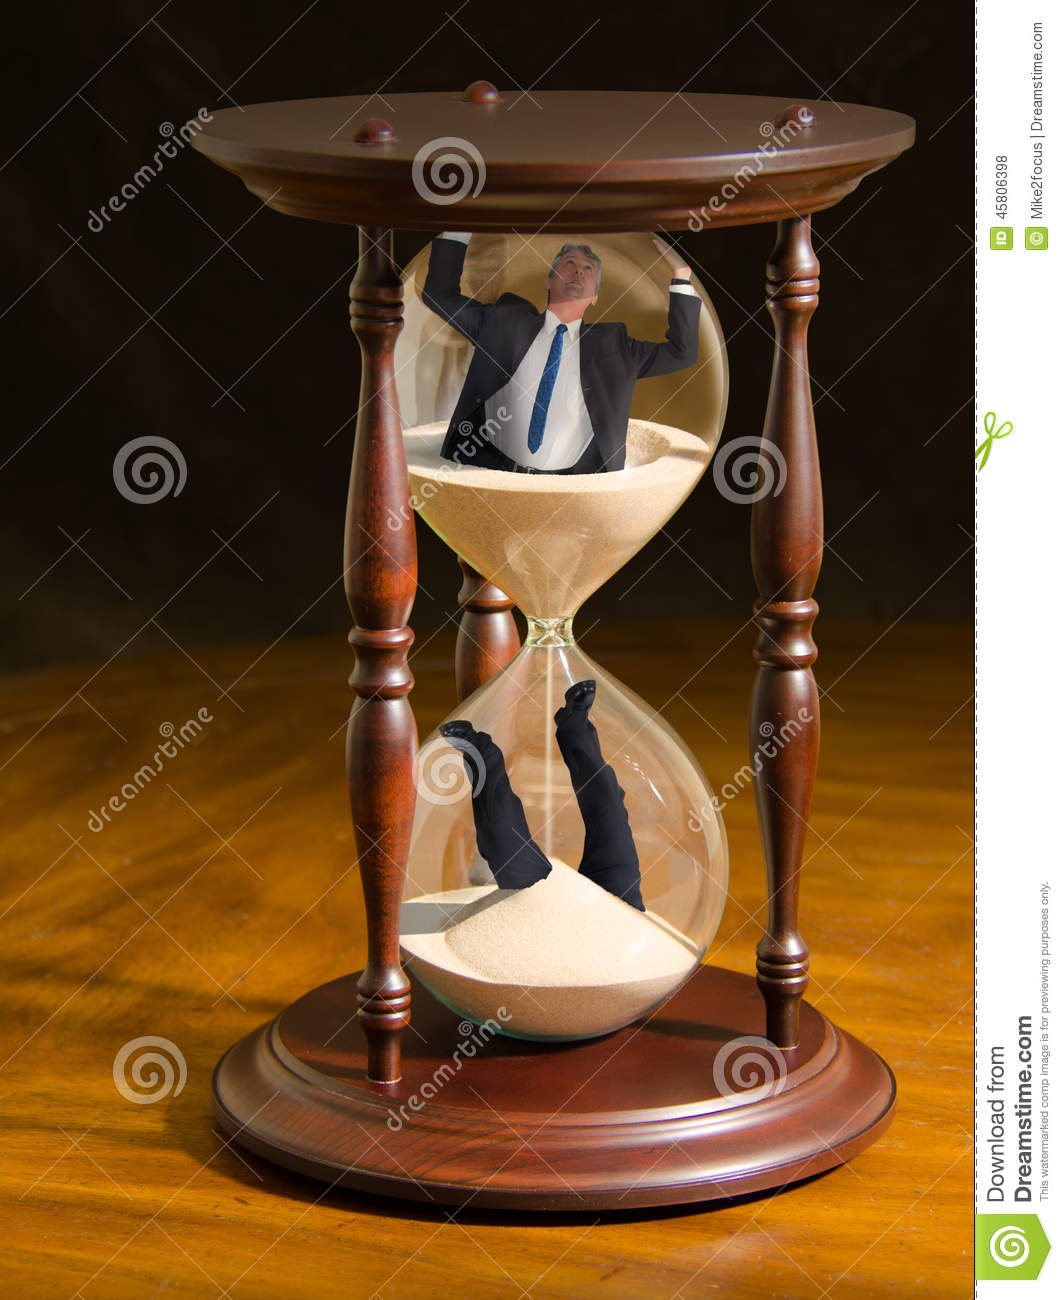 Running Out Of Time Hour Glass With Man Inside Stock Photo - Image ...